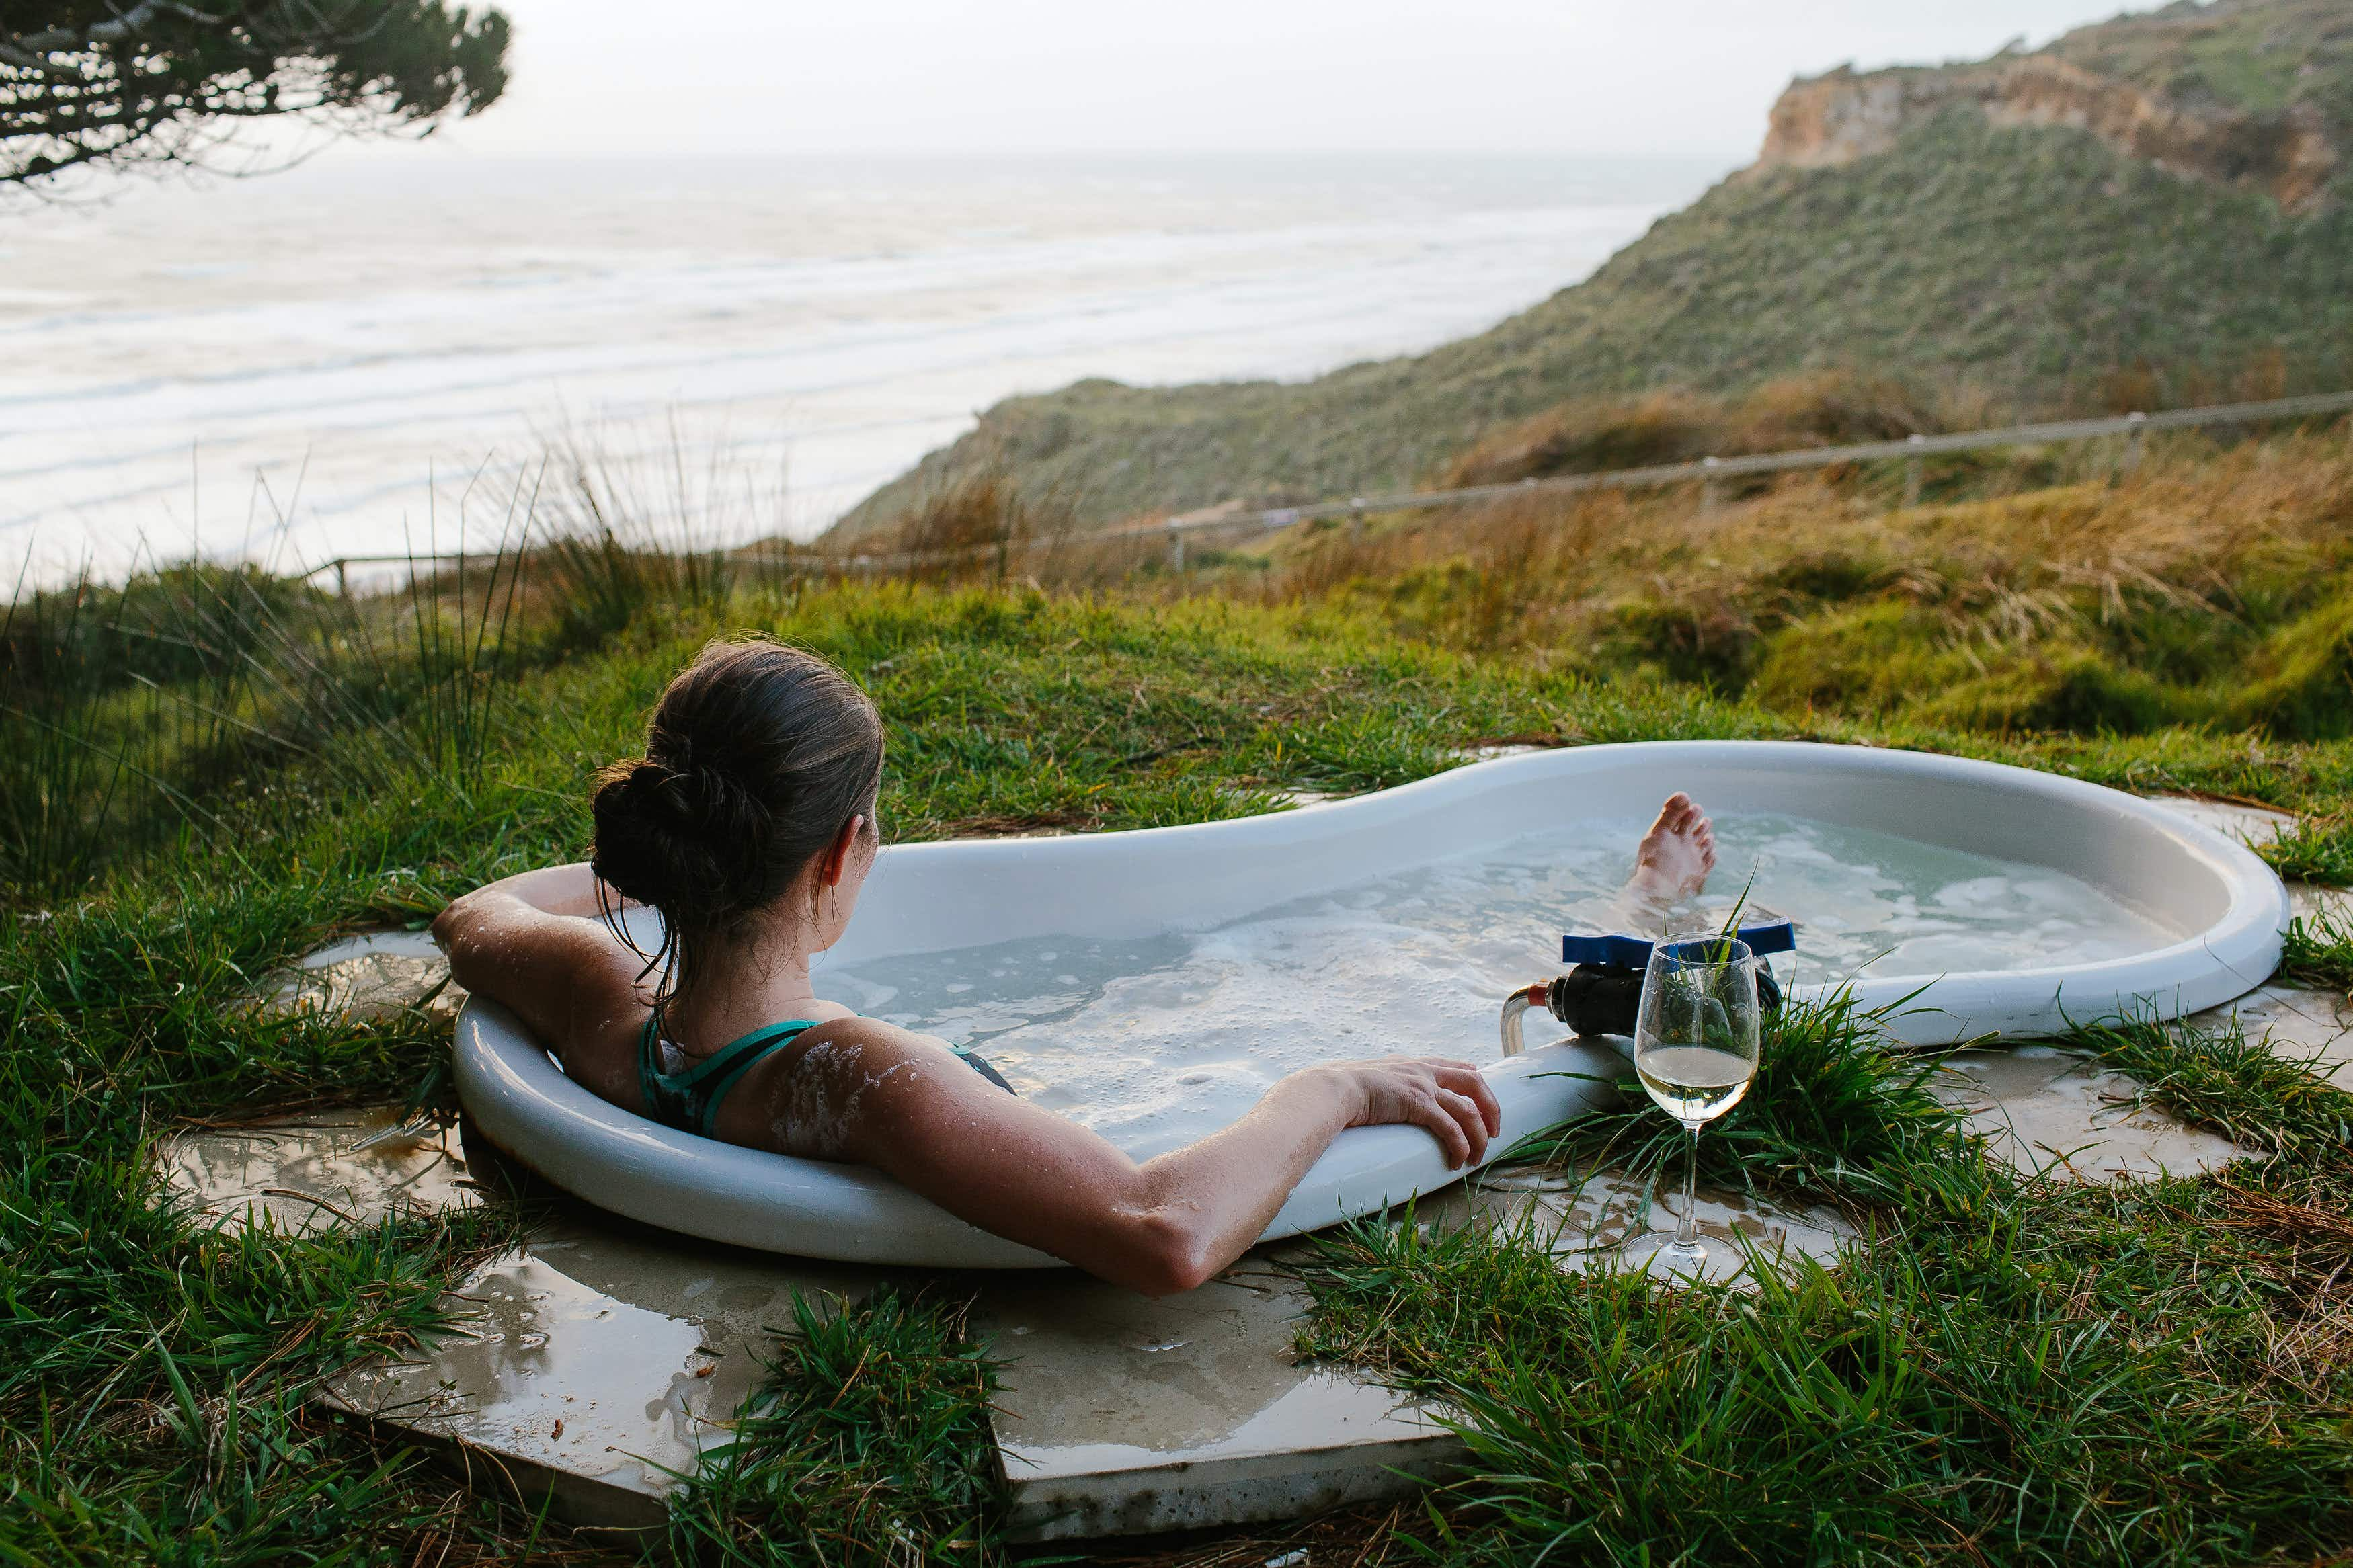 Sip wine and soak in an outdoor bath at this luxury New Zealand campsite